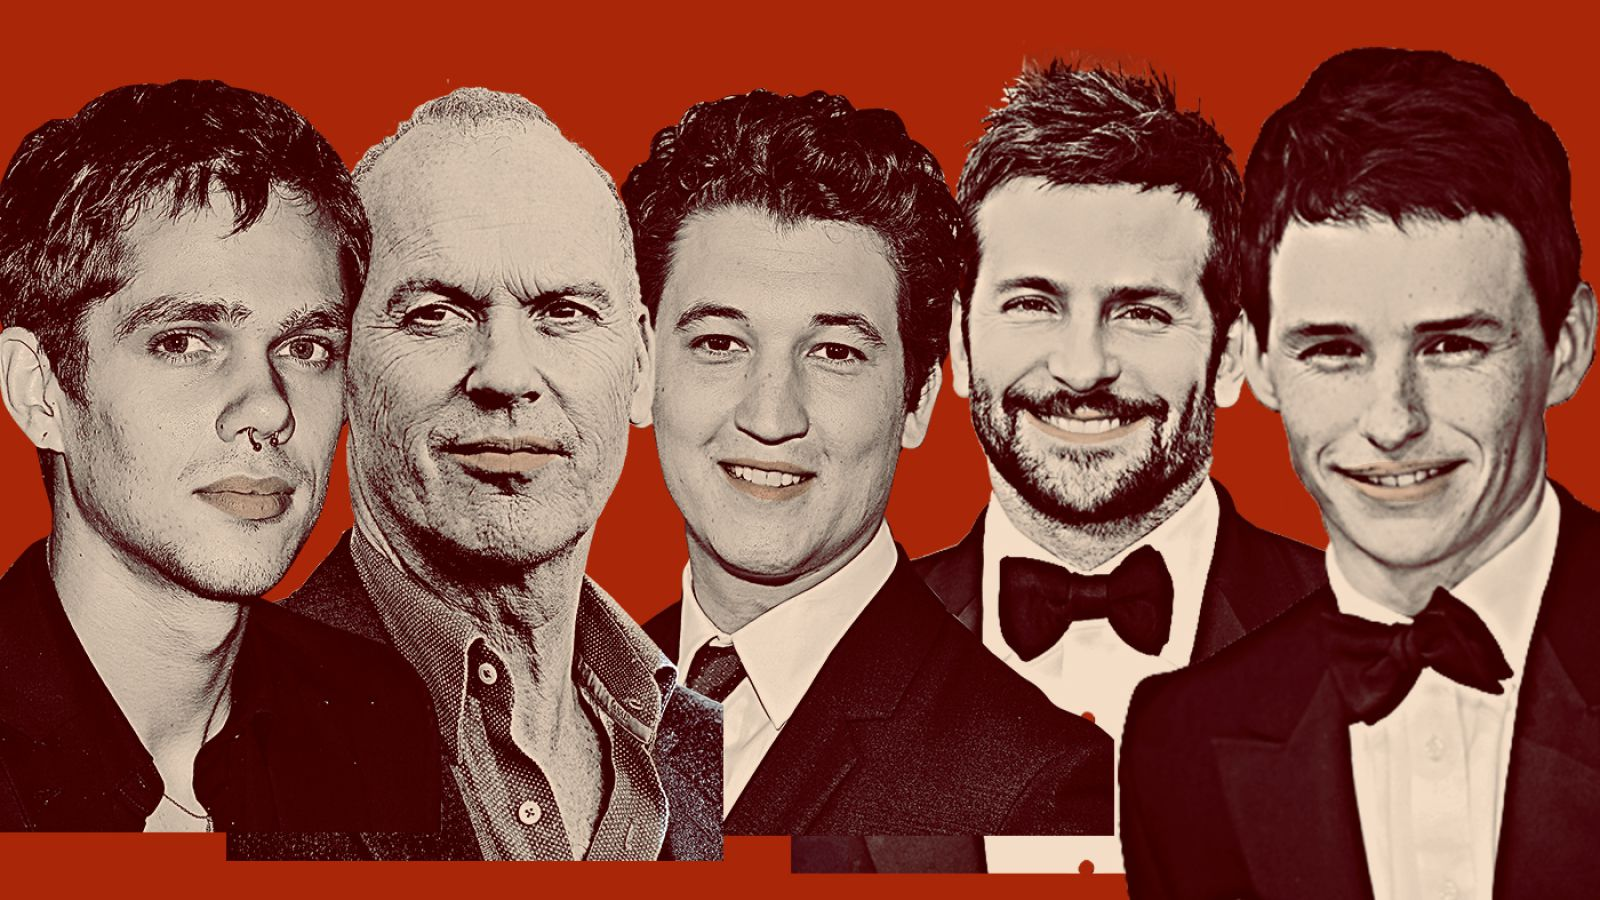 white male actors from Hollywood